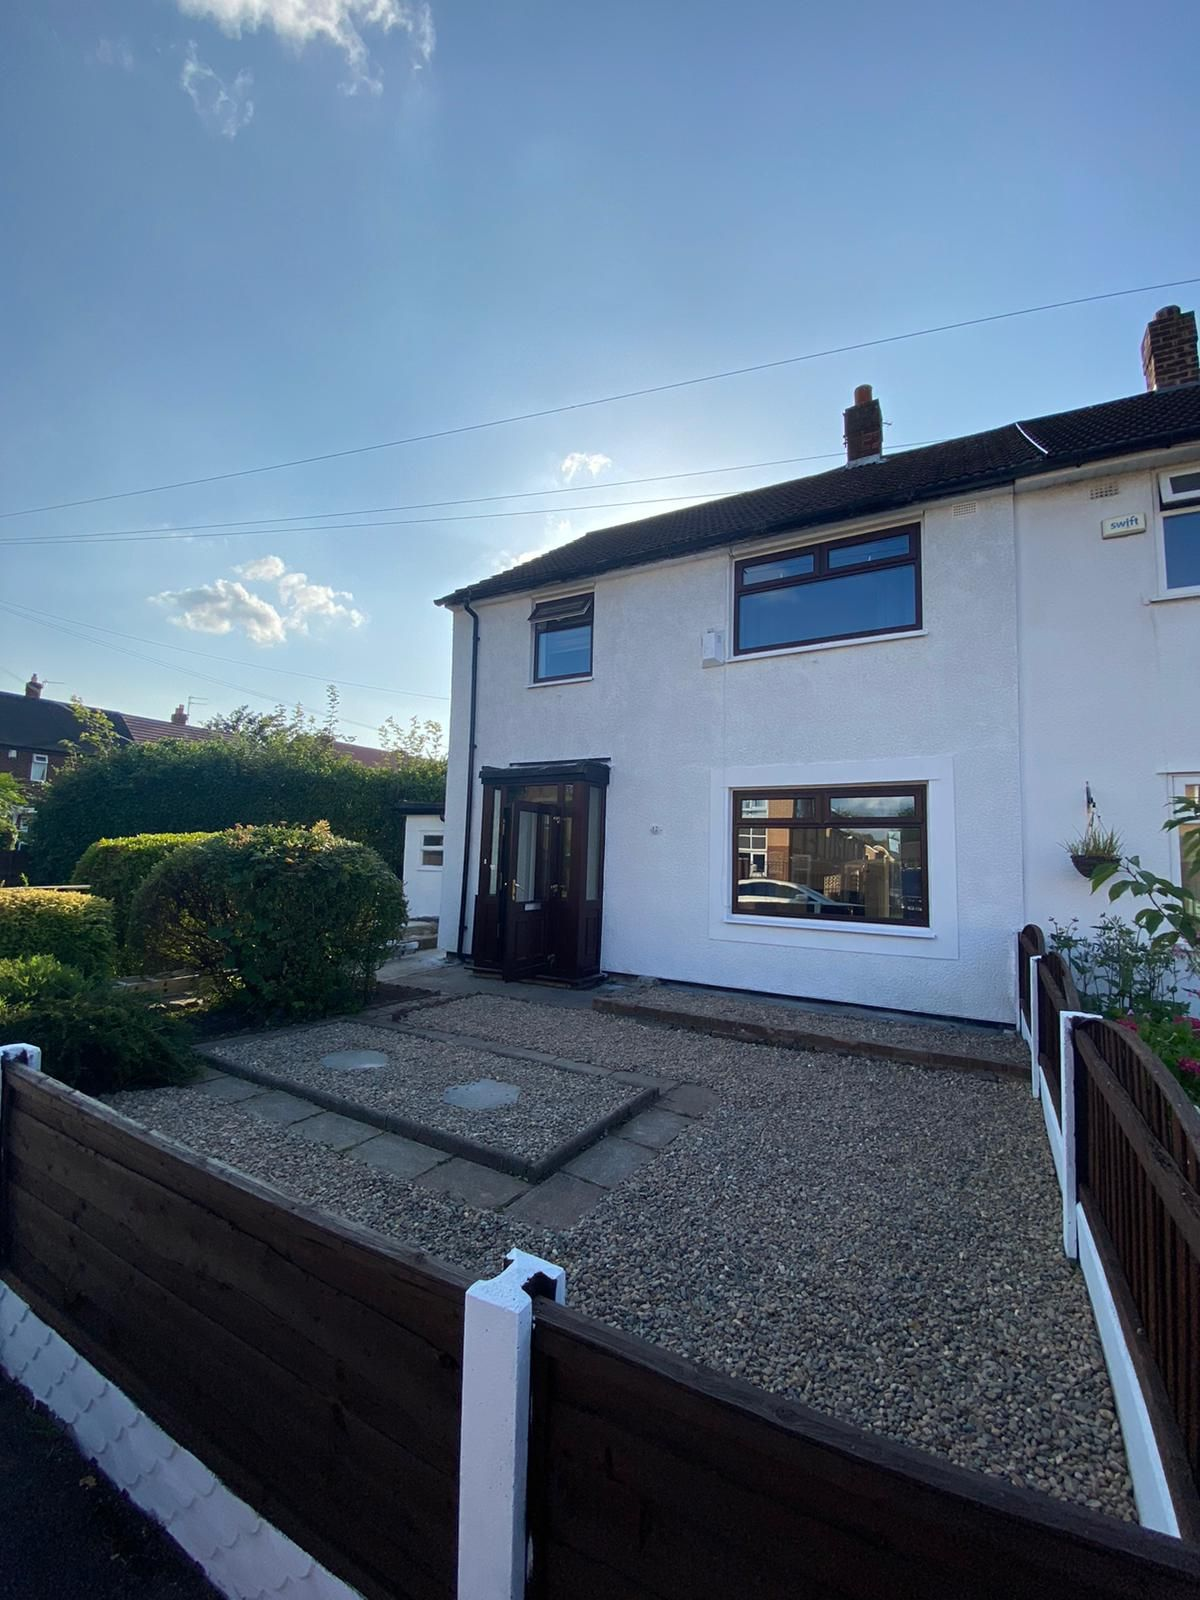 3 bedroom semi-detached house Reserved in Manchester - Photograph 13.